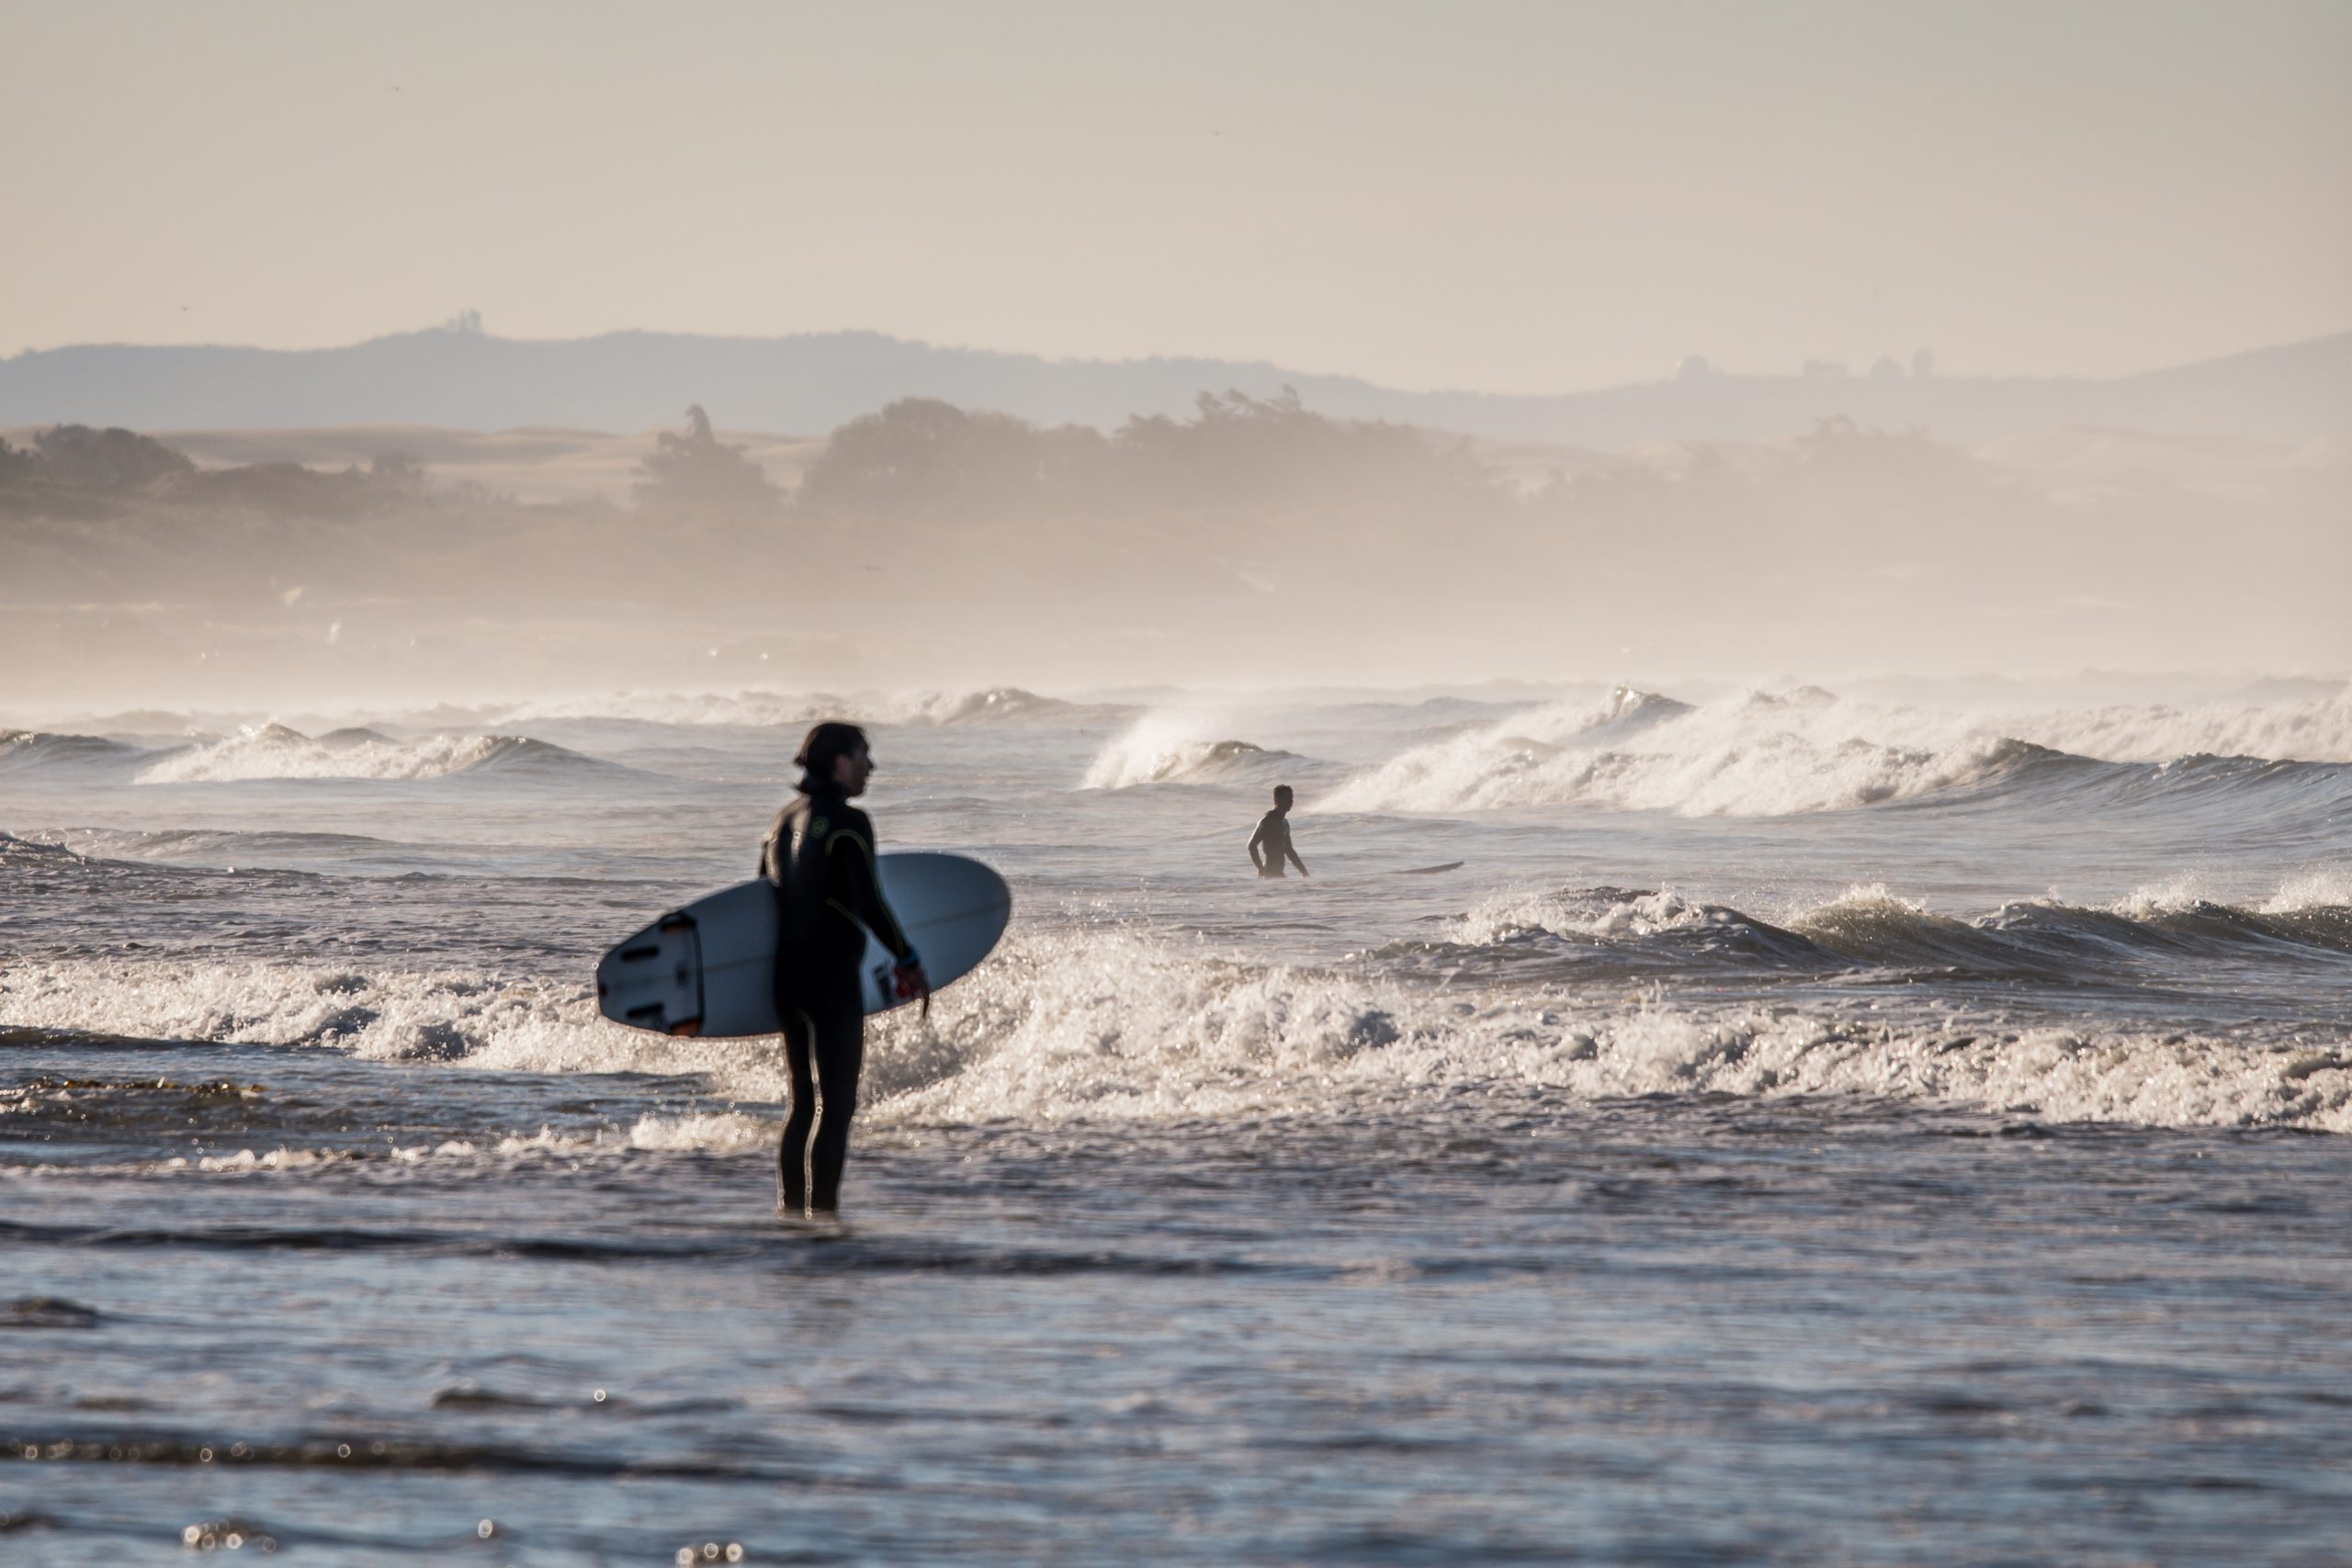 How To Find An Ideal Surf Spot